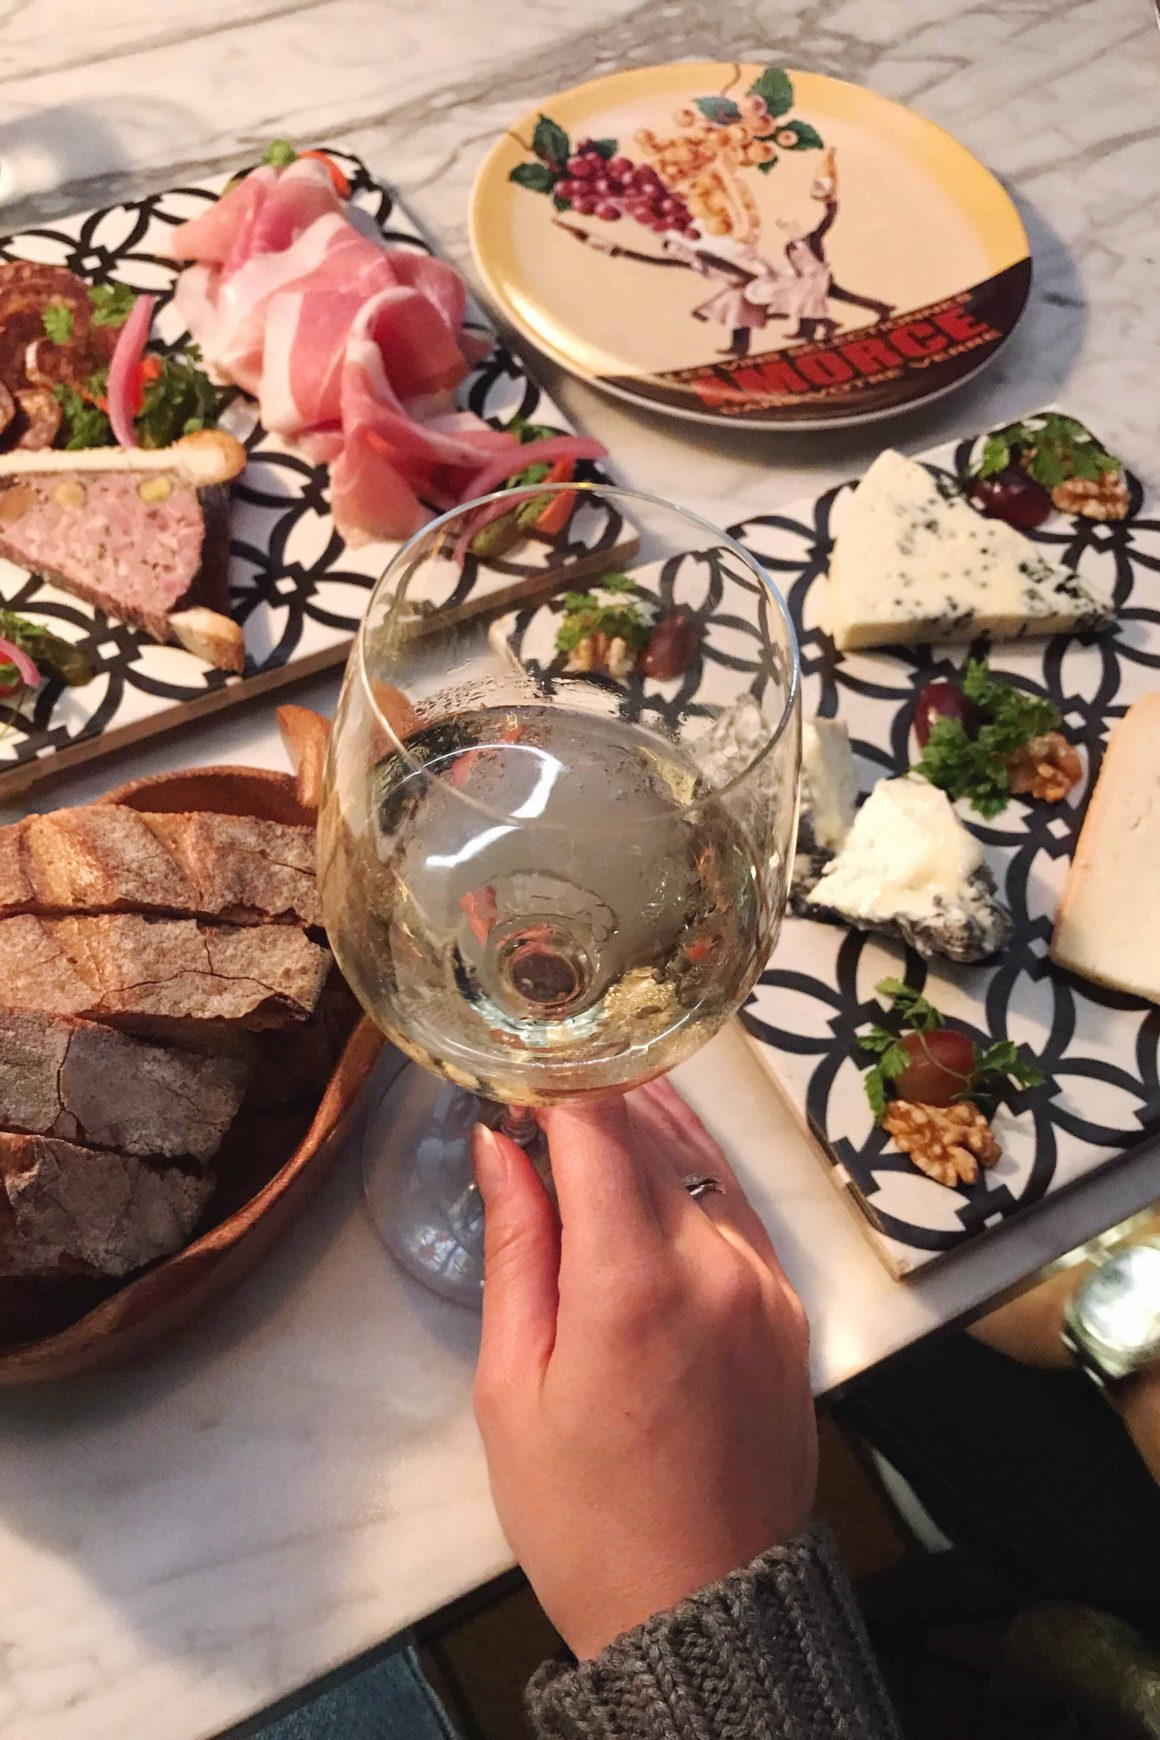 WINE & DINE LIKE YOU'RE IN PARIS AT BELLE VIE